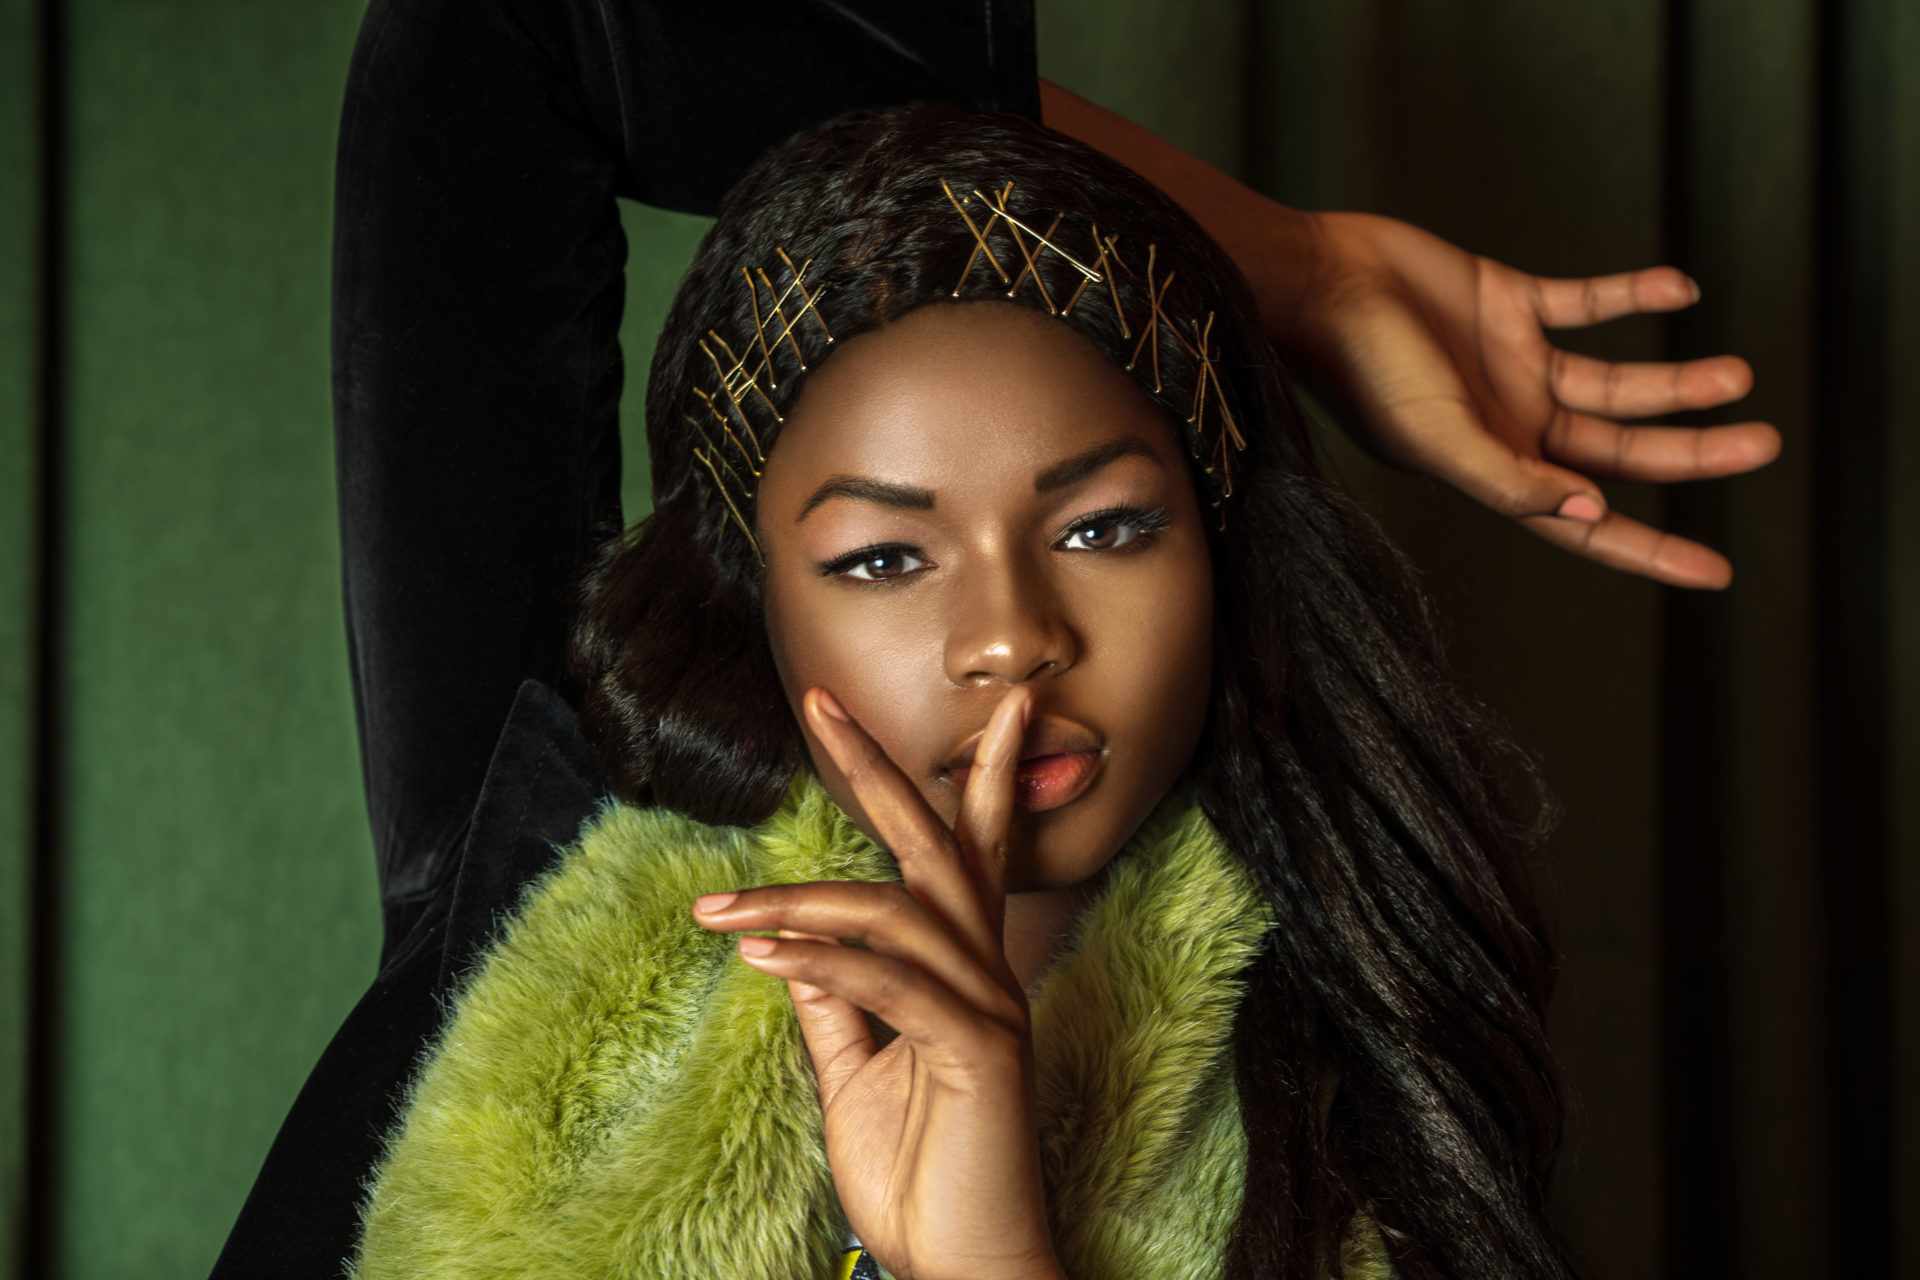 Sexy Black Lady with Green Fur Coat